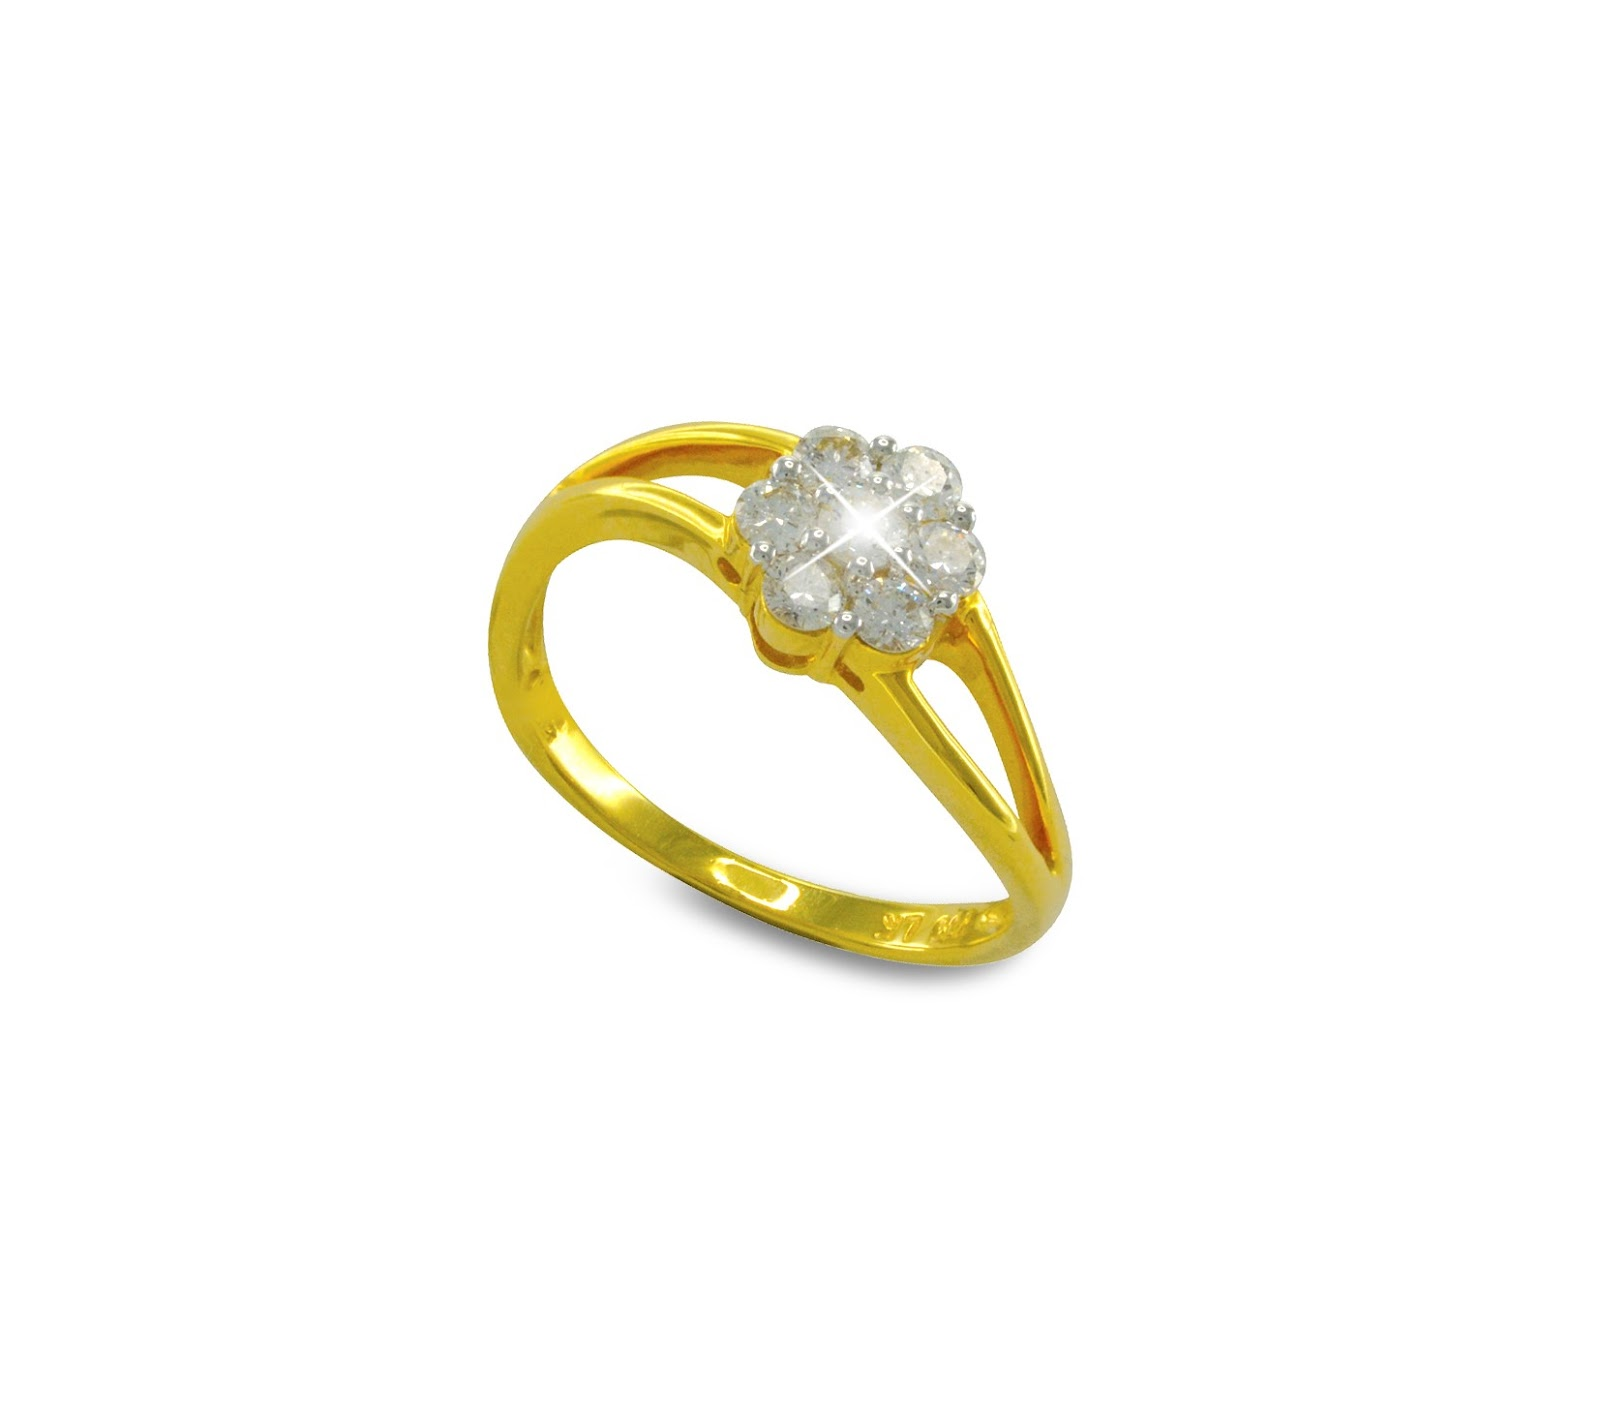 Wah Chan Gold Jewellery April 2016 Chic Classic Wedding Ring Cincin Kawin Tunangan Pernikahan 2 Berlian Emas Kuning 18k